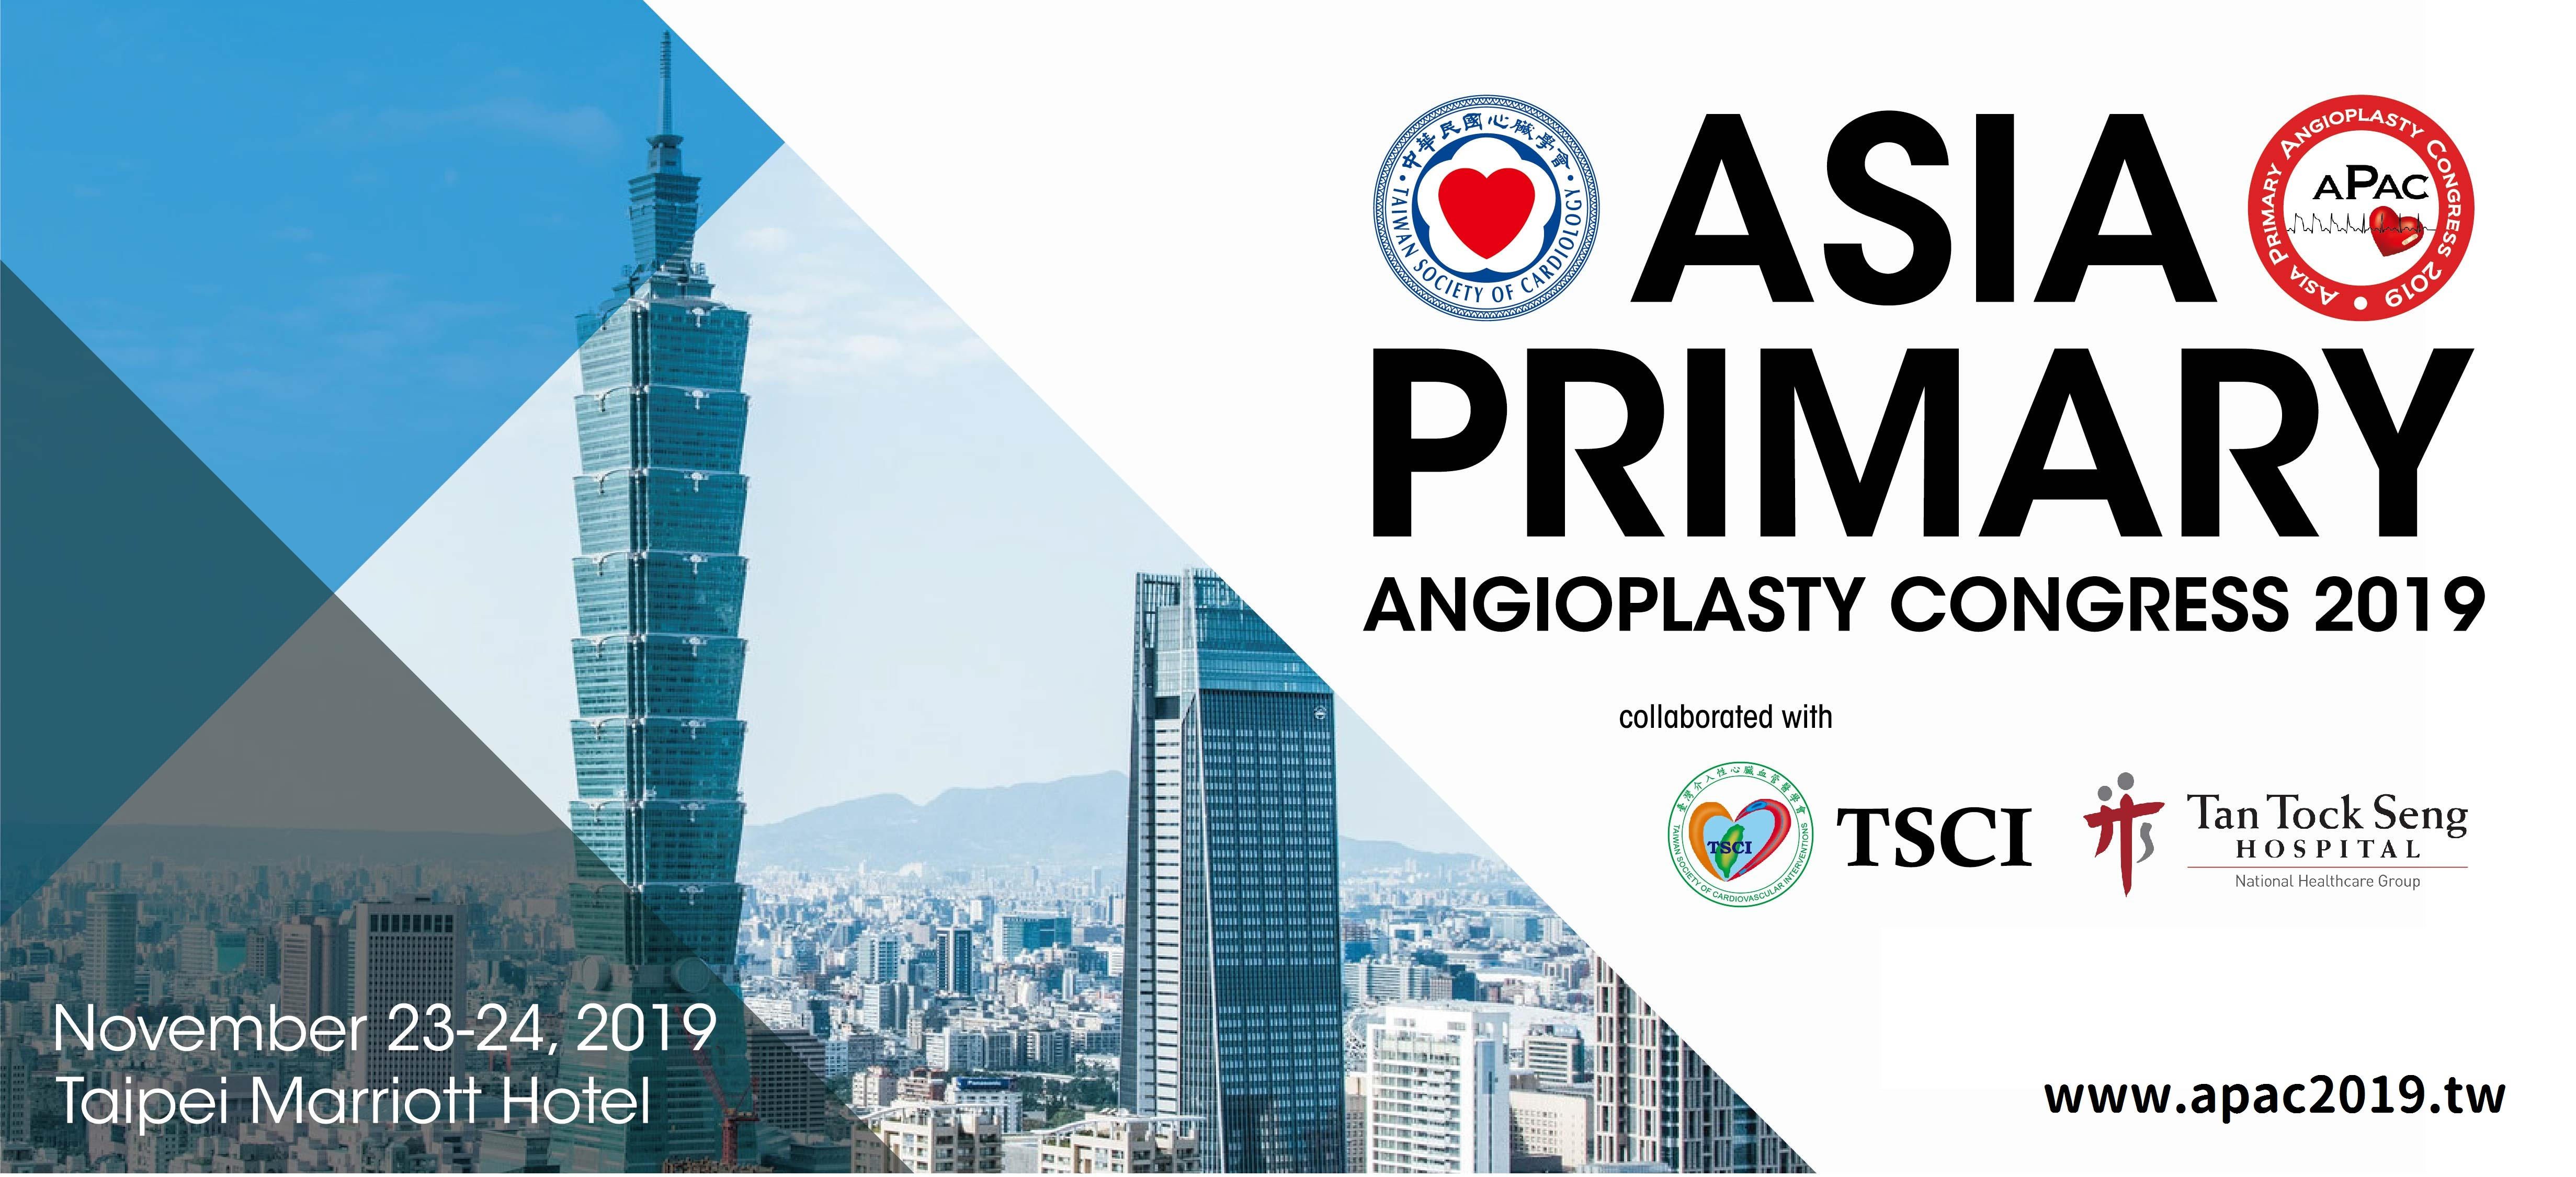 ASIA PRIMARY ANGIOPLASTY CONGRESS 2019